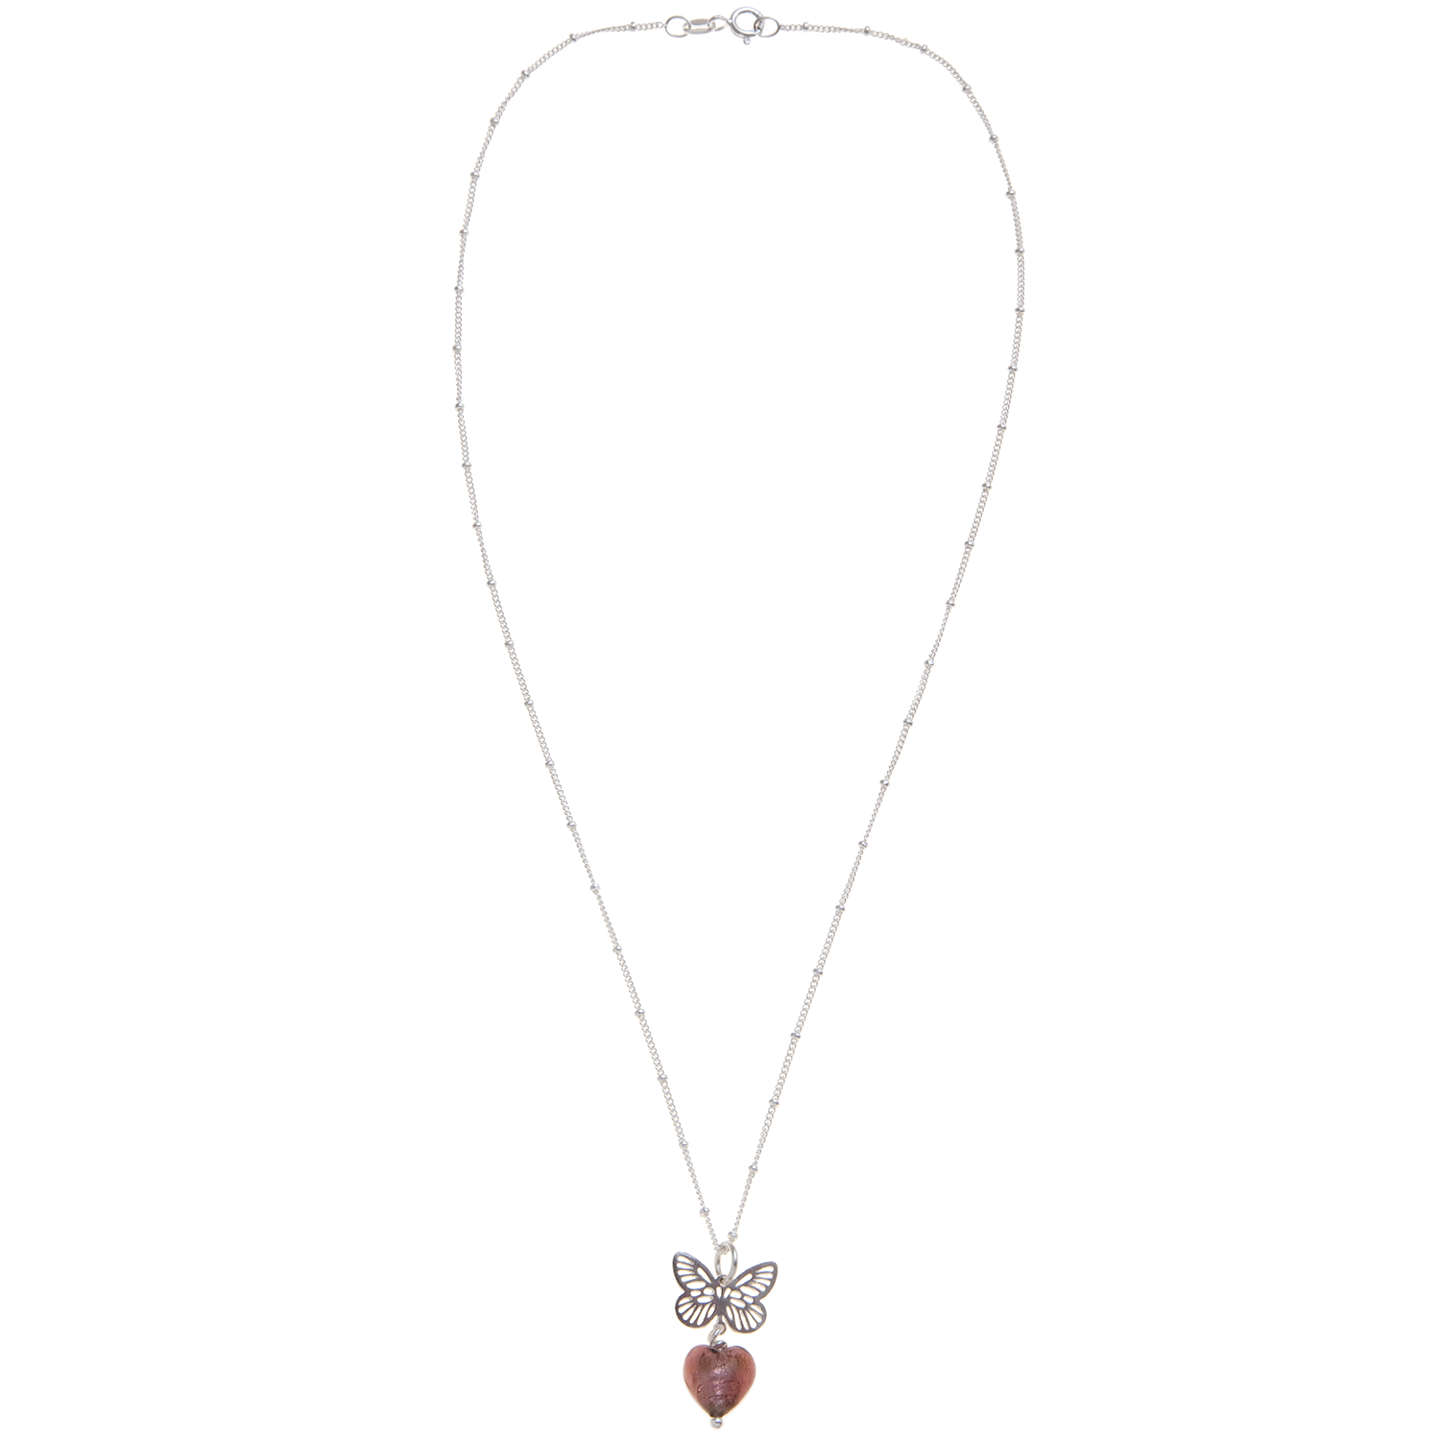 BuyMartick Butterfly and Heart Pendant Necklace, Plum Online at johnlewis.com